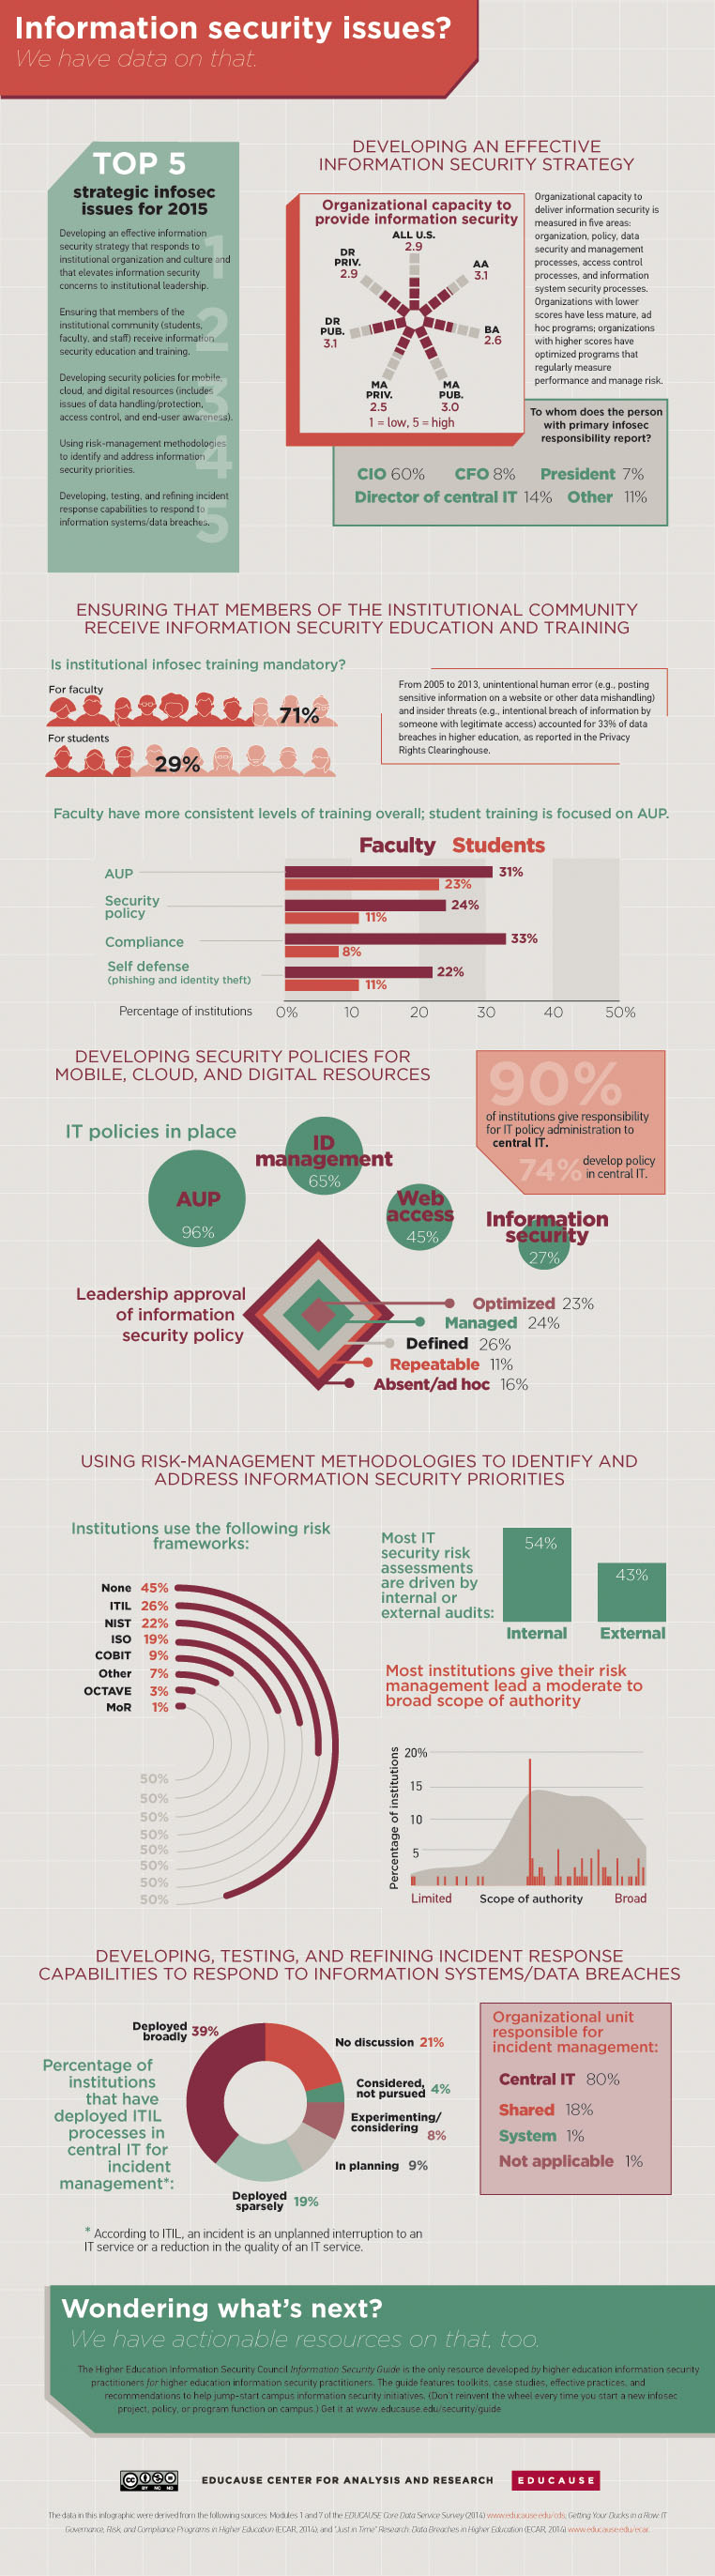 educause-infographic